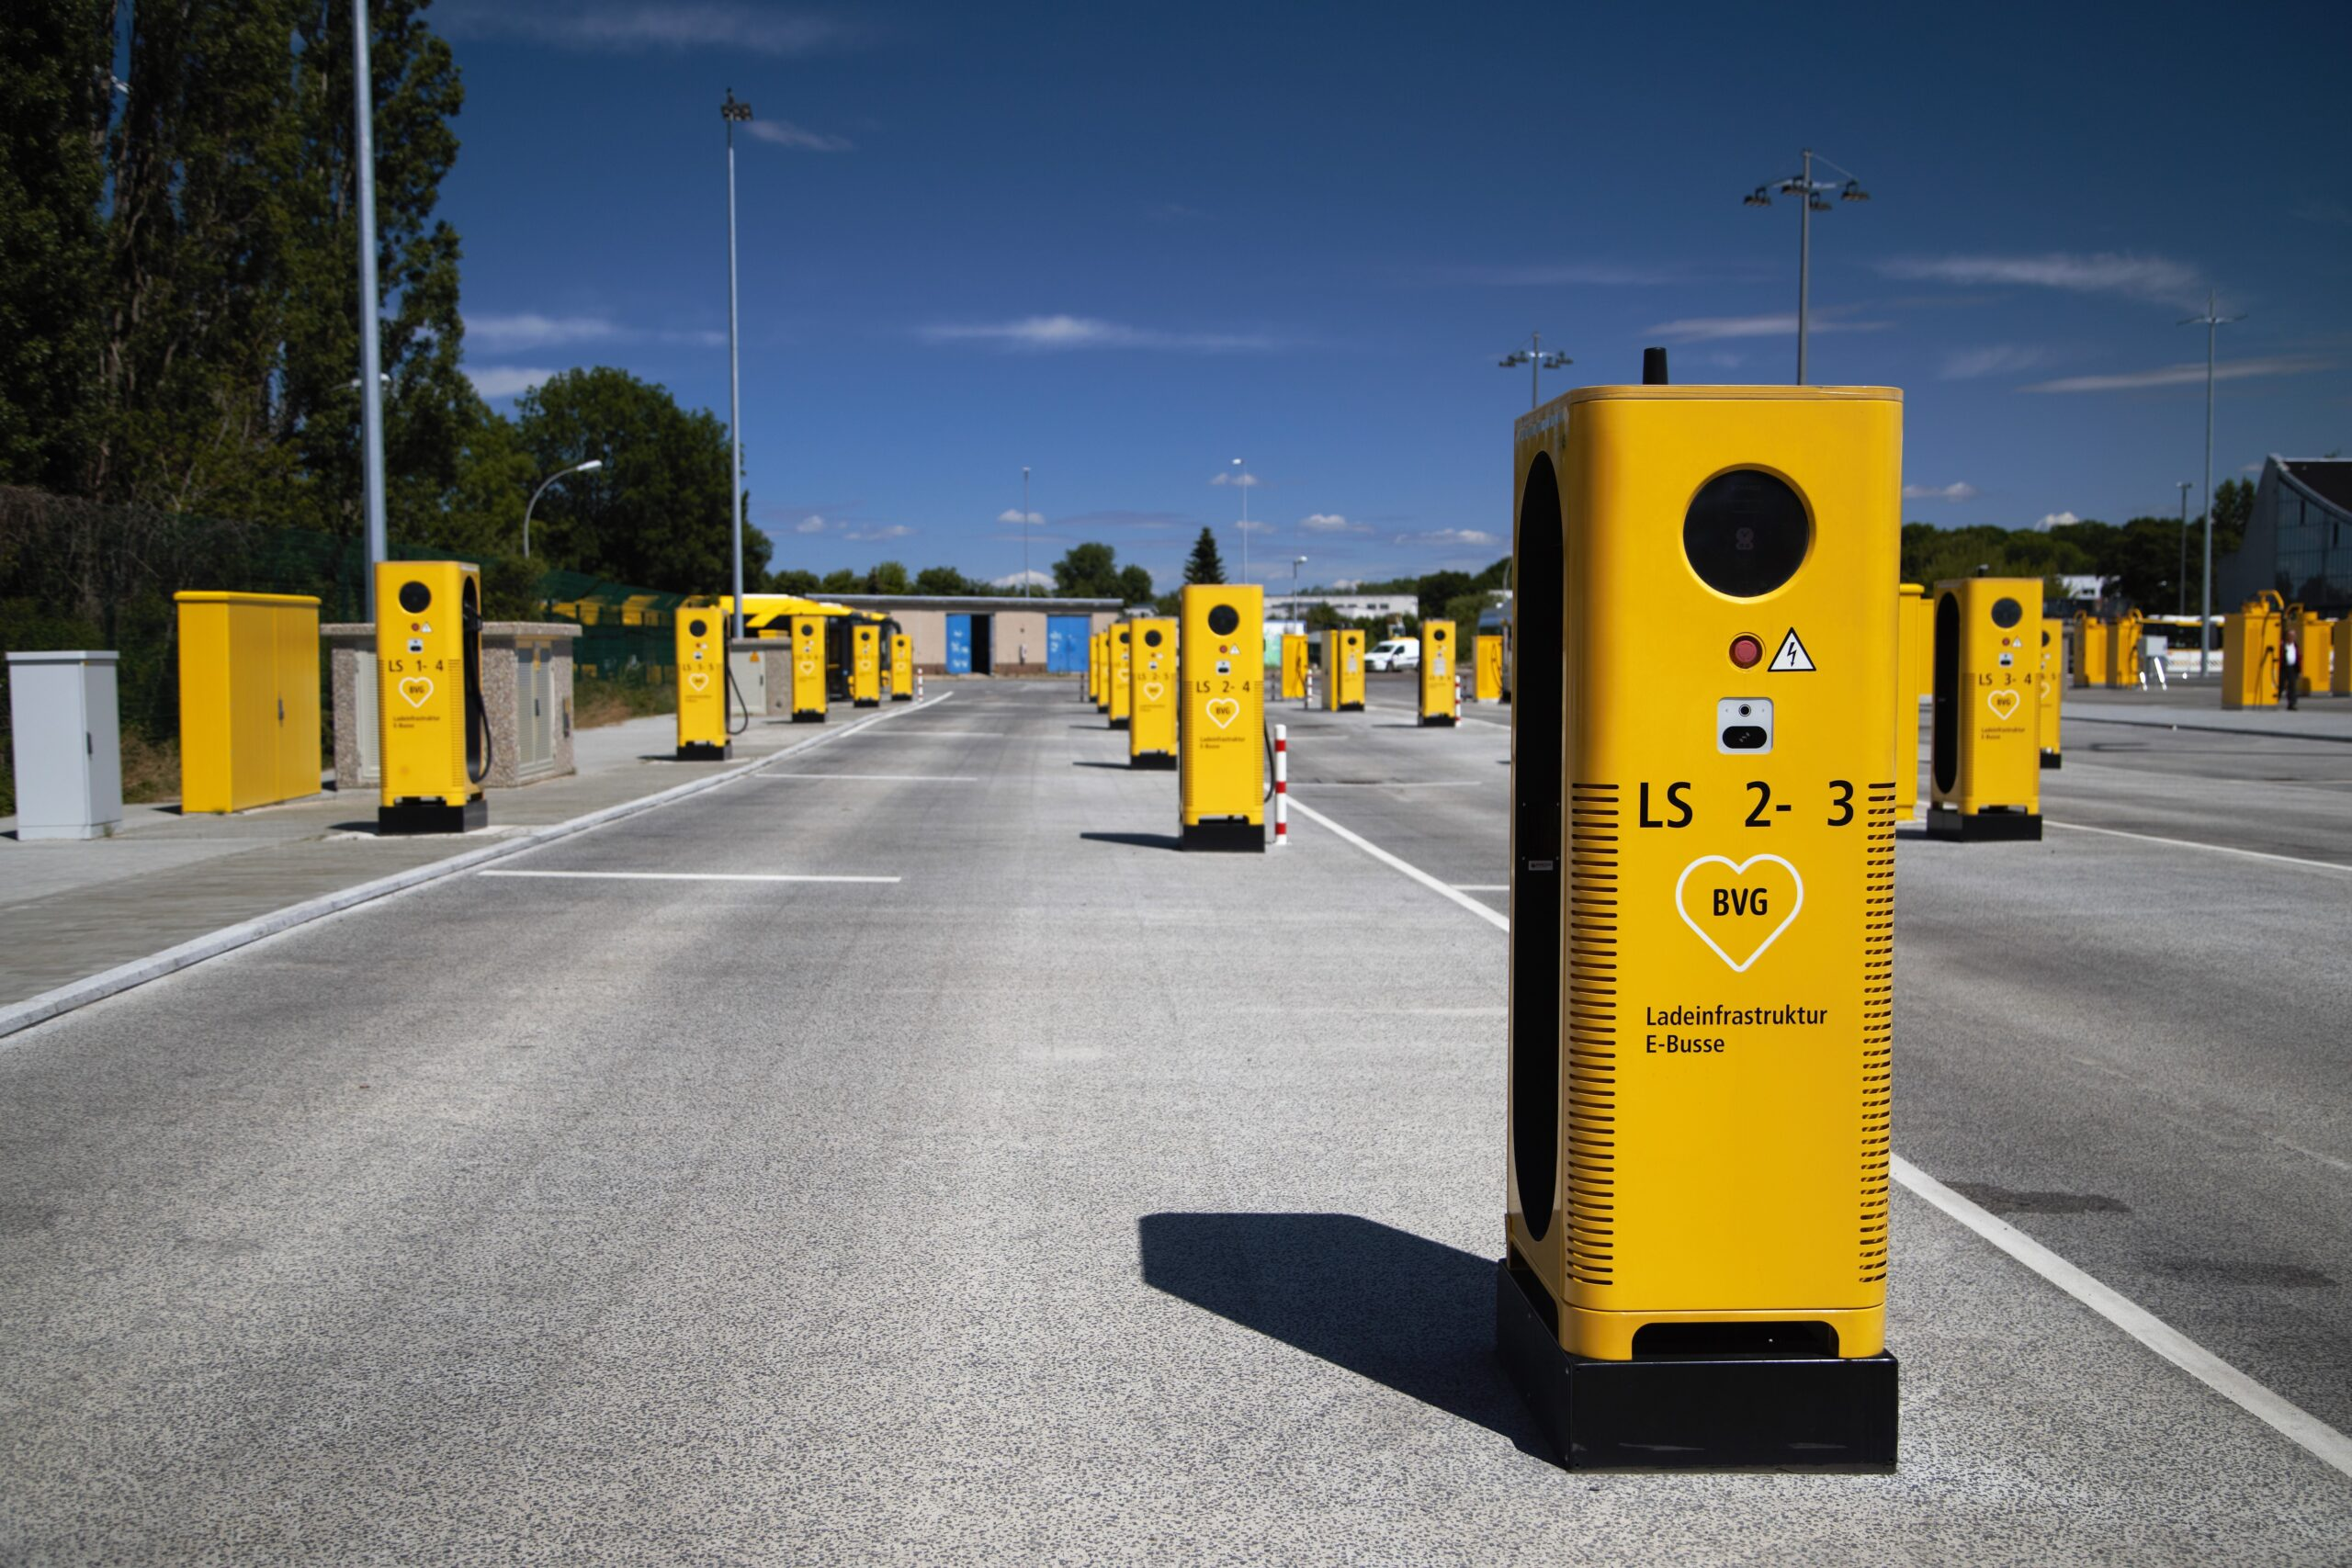 Charging infrastructure for BVG in Berlin